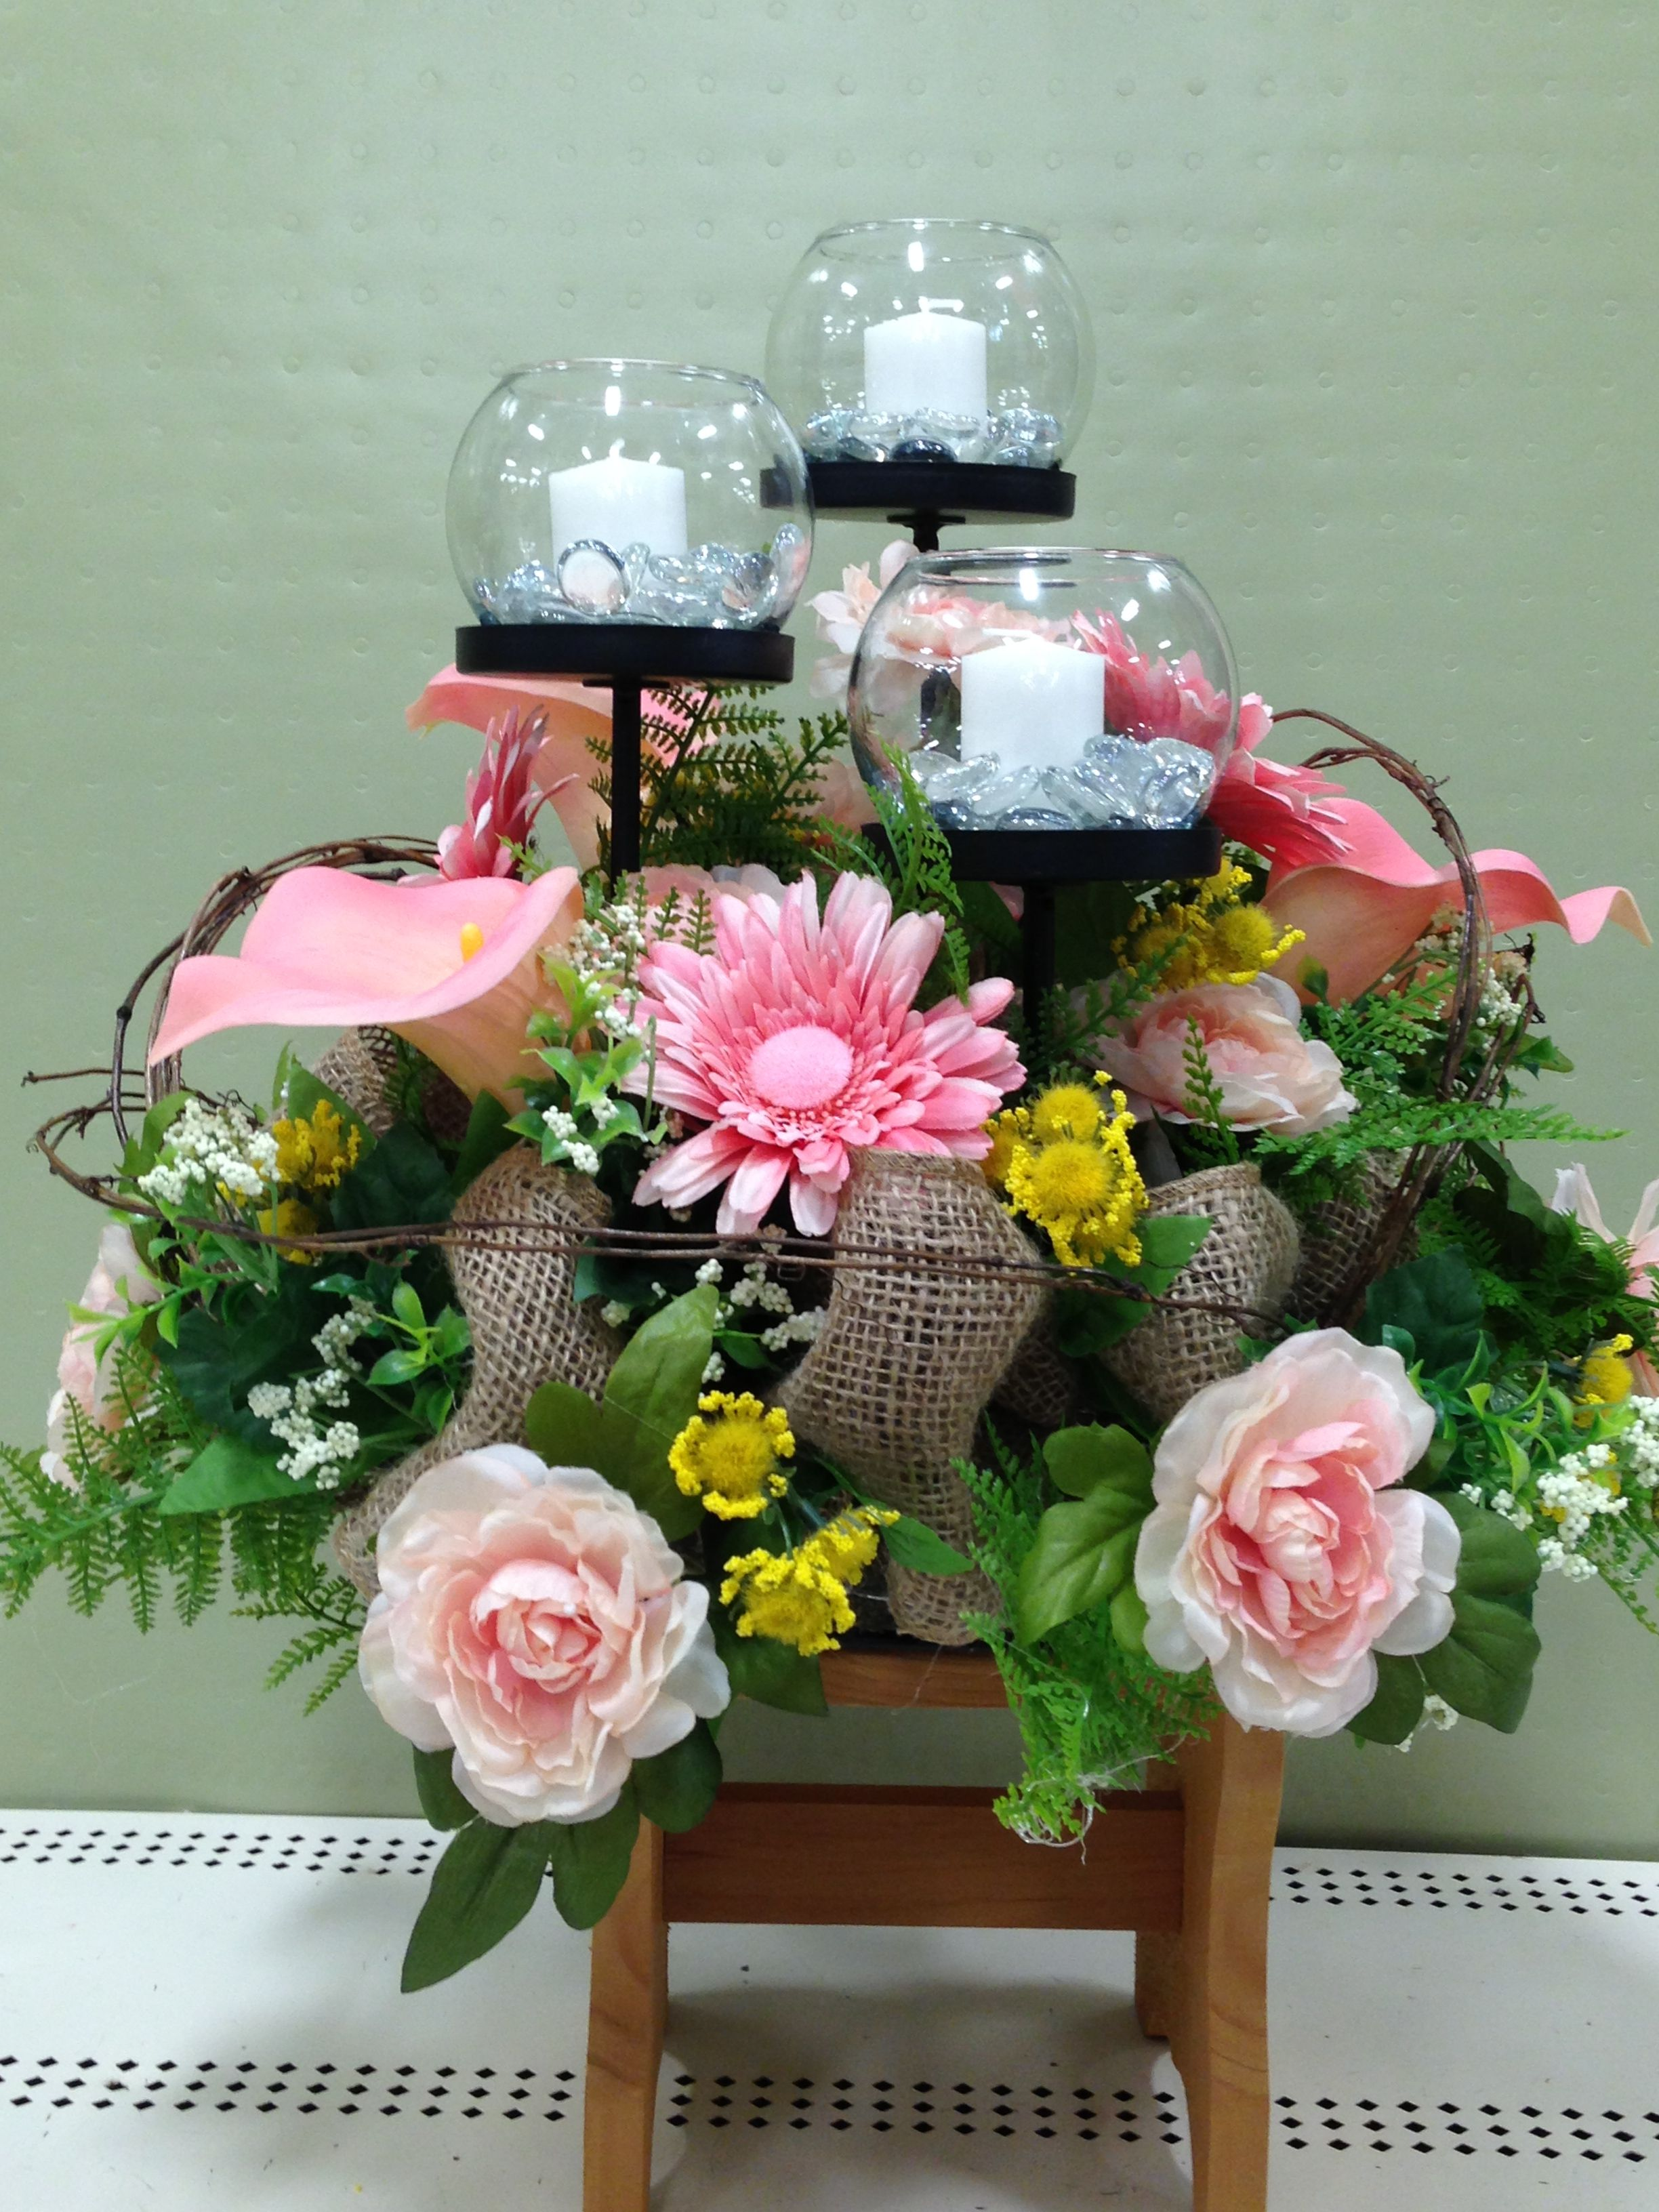 Spring candle arrangement made by suzanne at michaels in